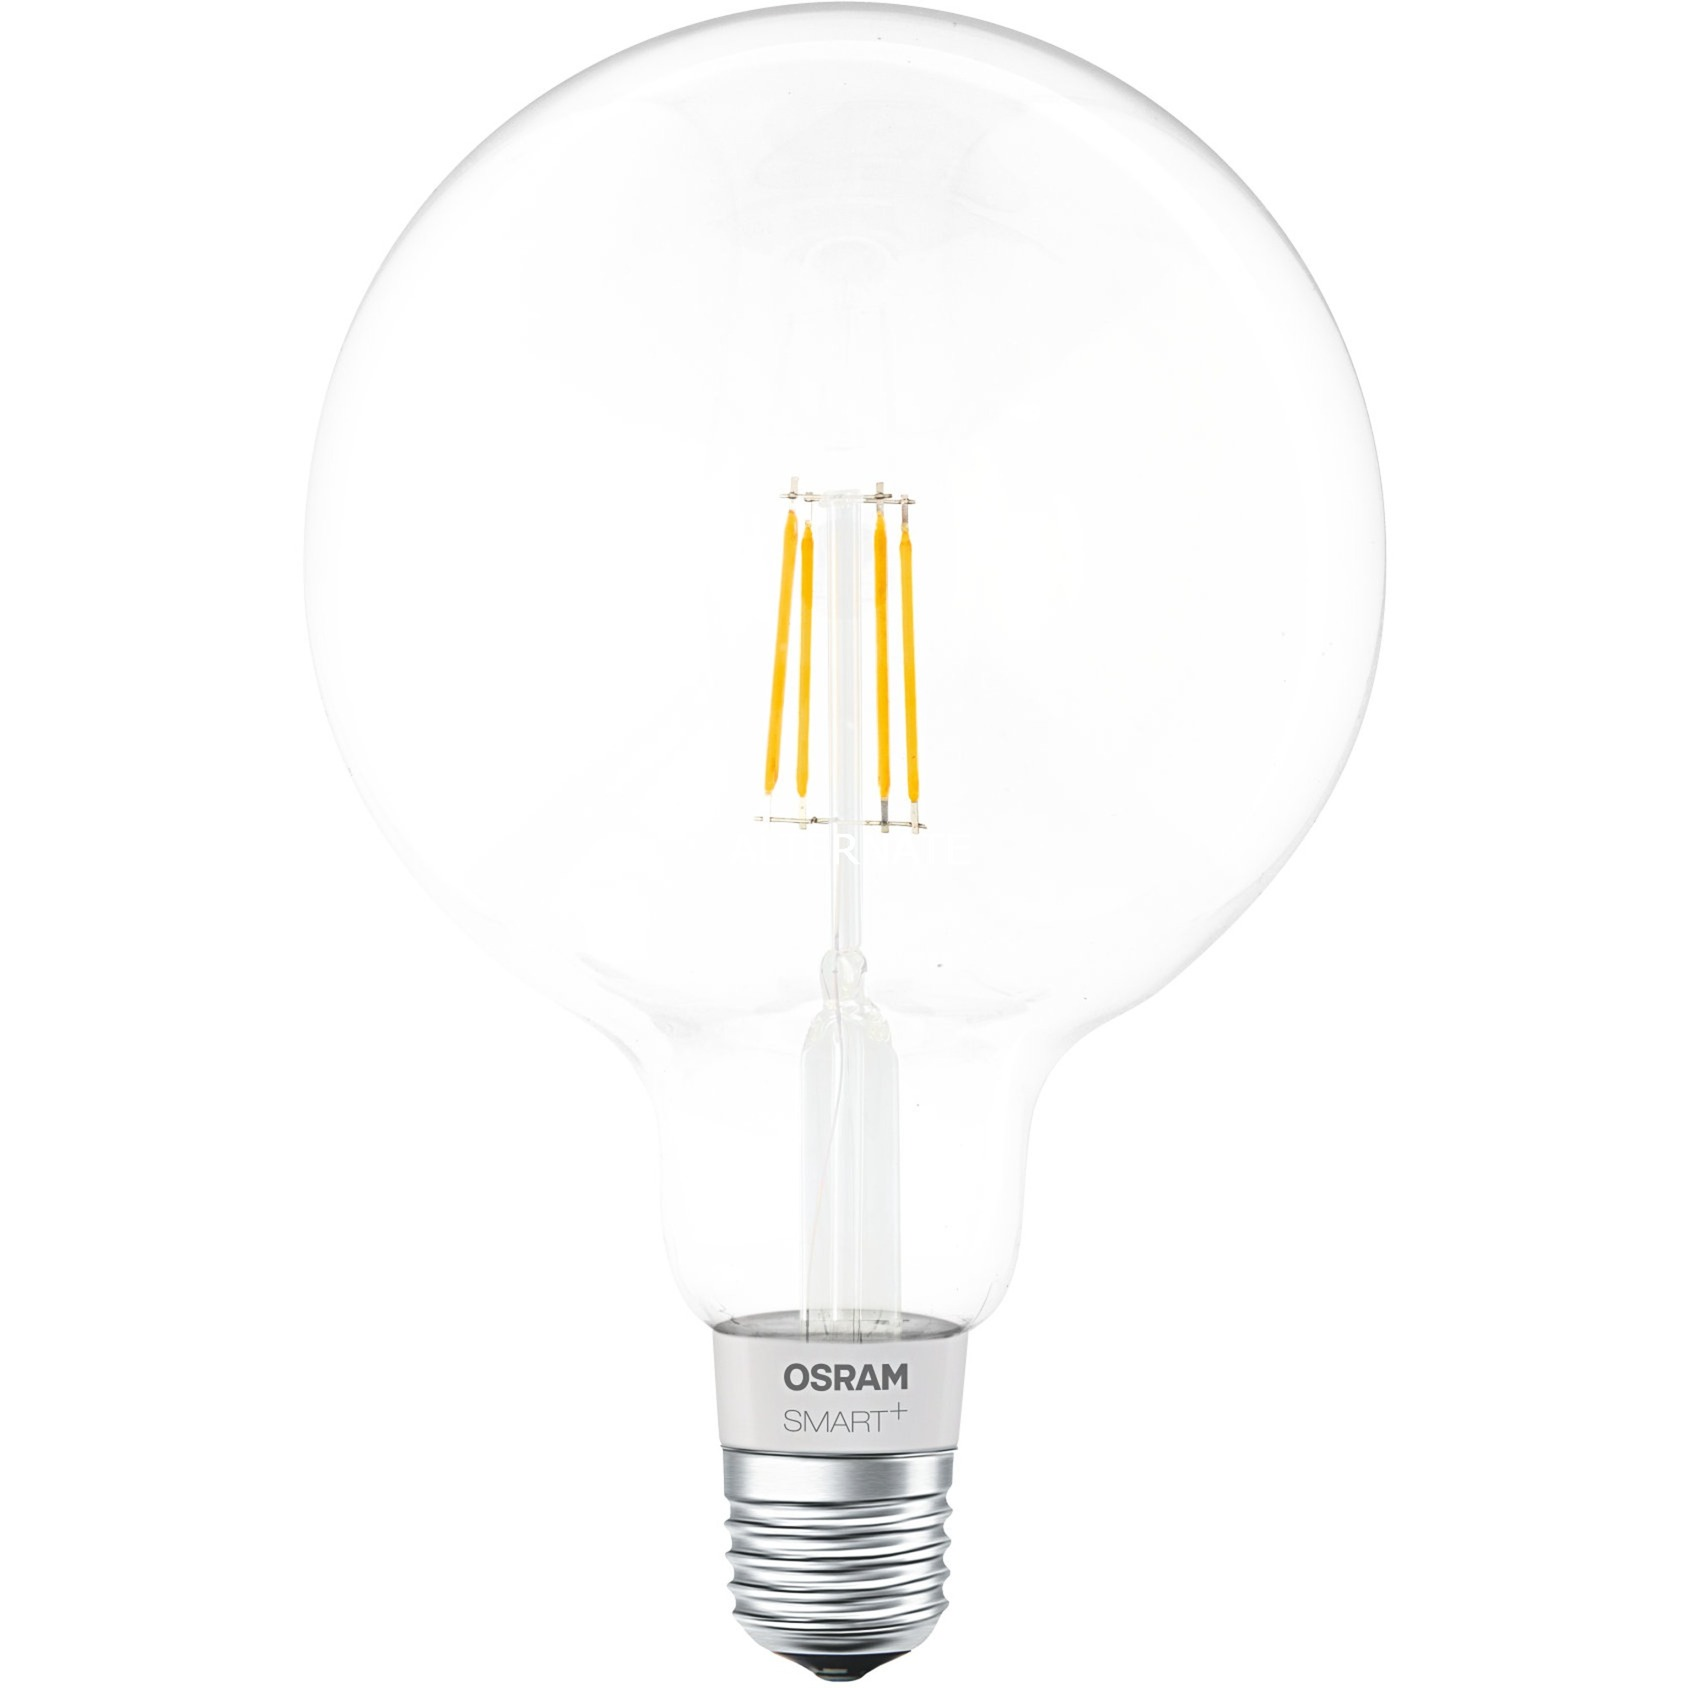 Smart + Filament Globe Bombilla inteligente Bluetooth 5,5 W, Lámpara LED